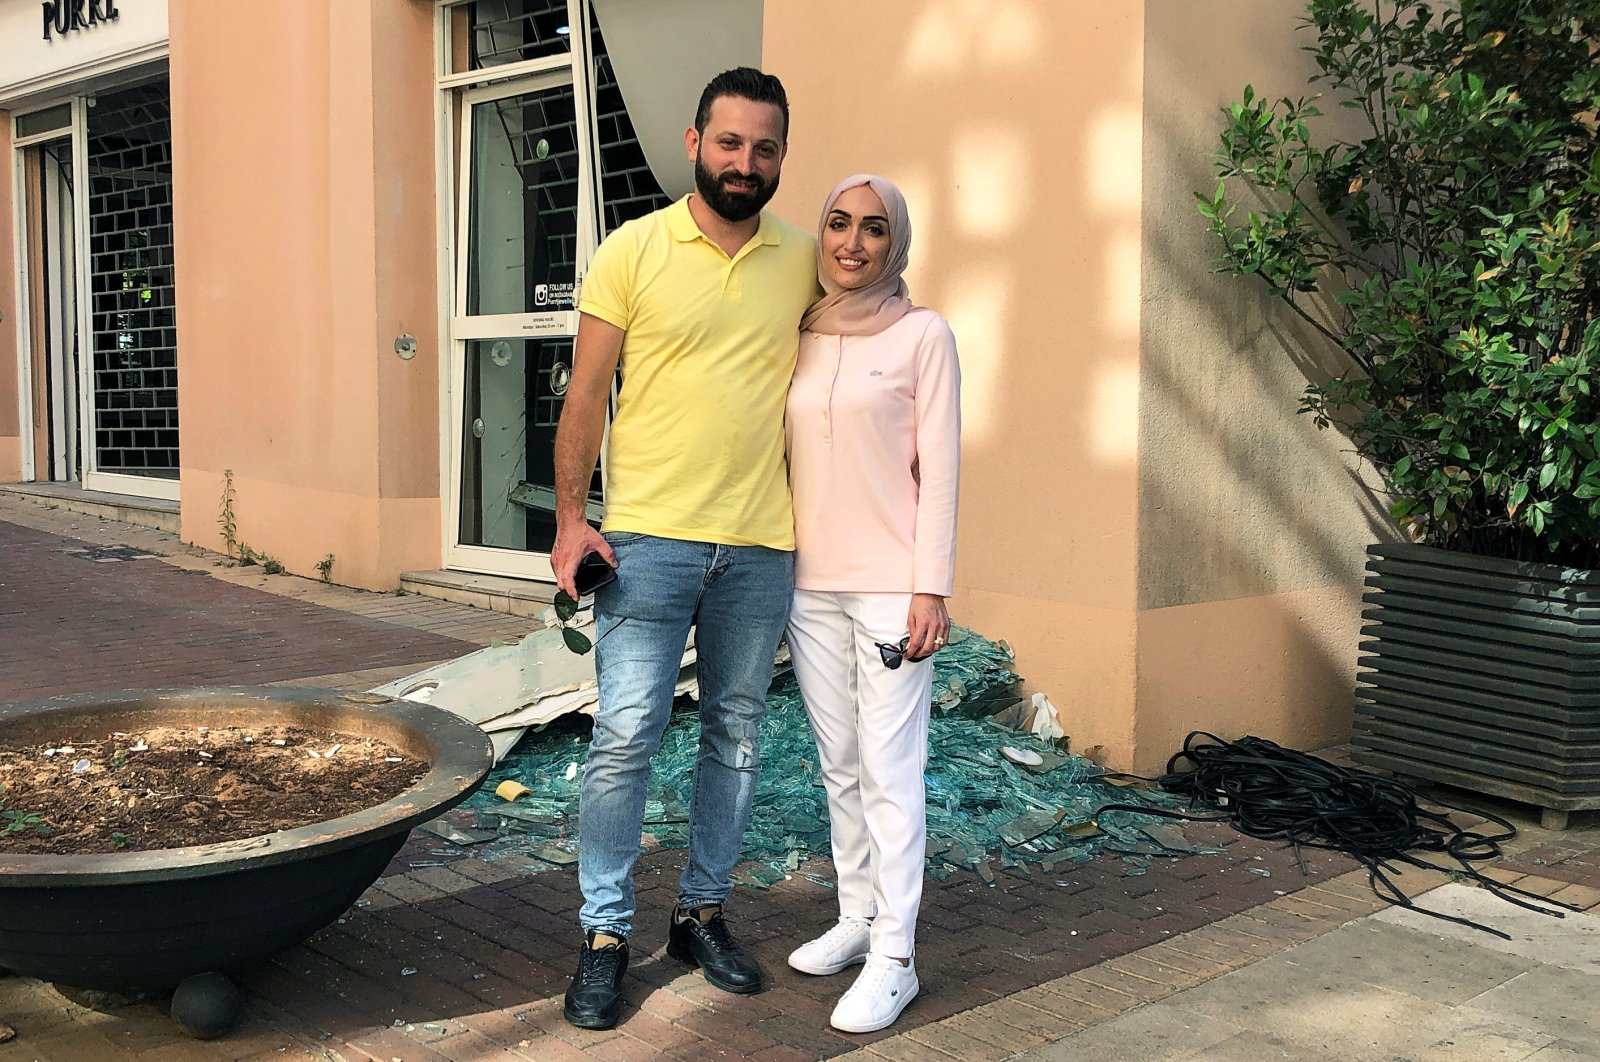 Bride Israa Seblani poses for a picture with her husband Ahmad Subeih in the same place where they were taking their wedding photos at the moment of the explosion at Beirut's port area, Aug. 5, 2020. (REUTERS Photo)